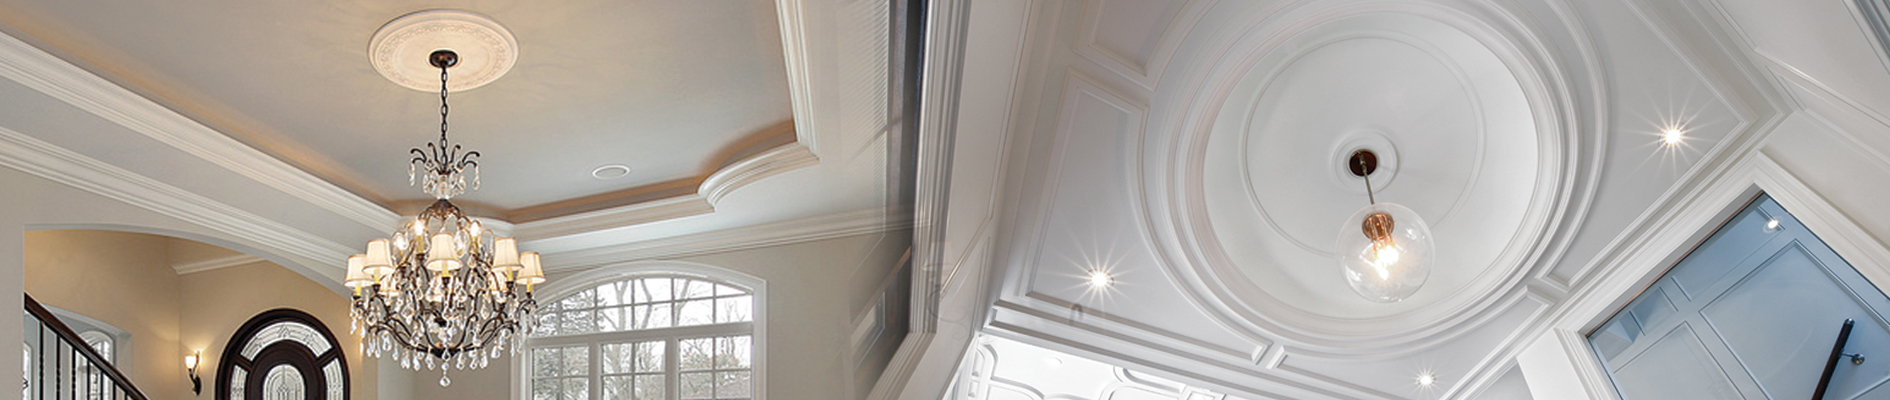 Crown Moulding, Ceiling Medallion